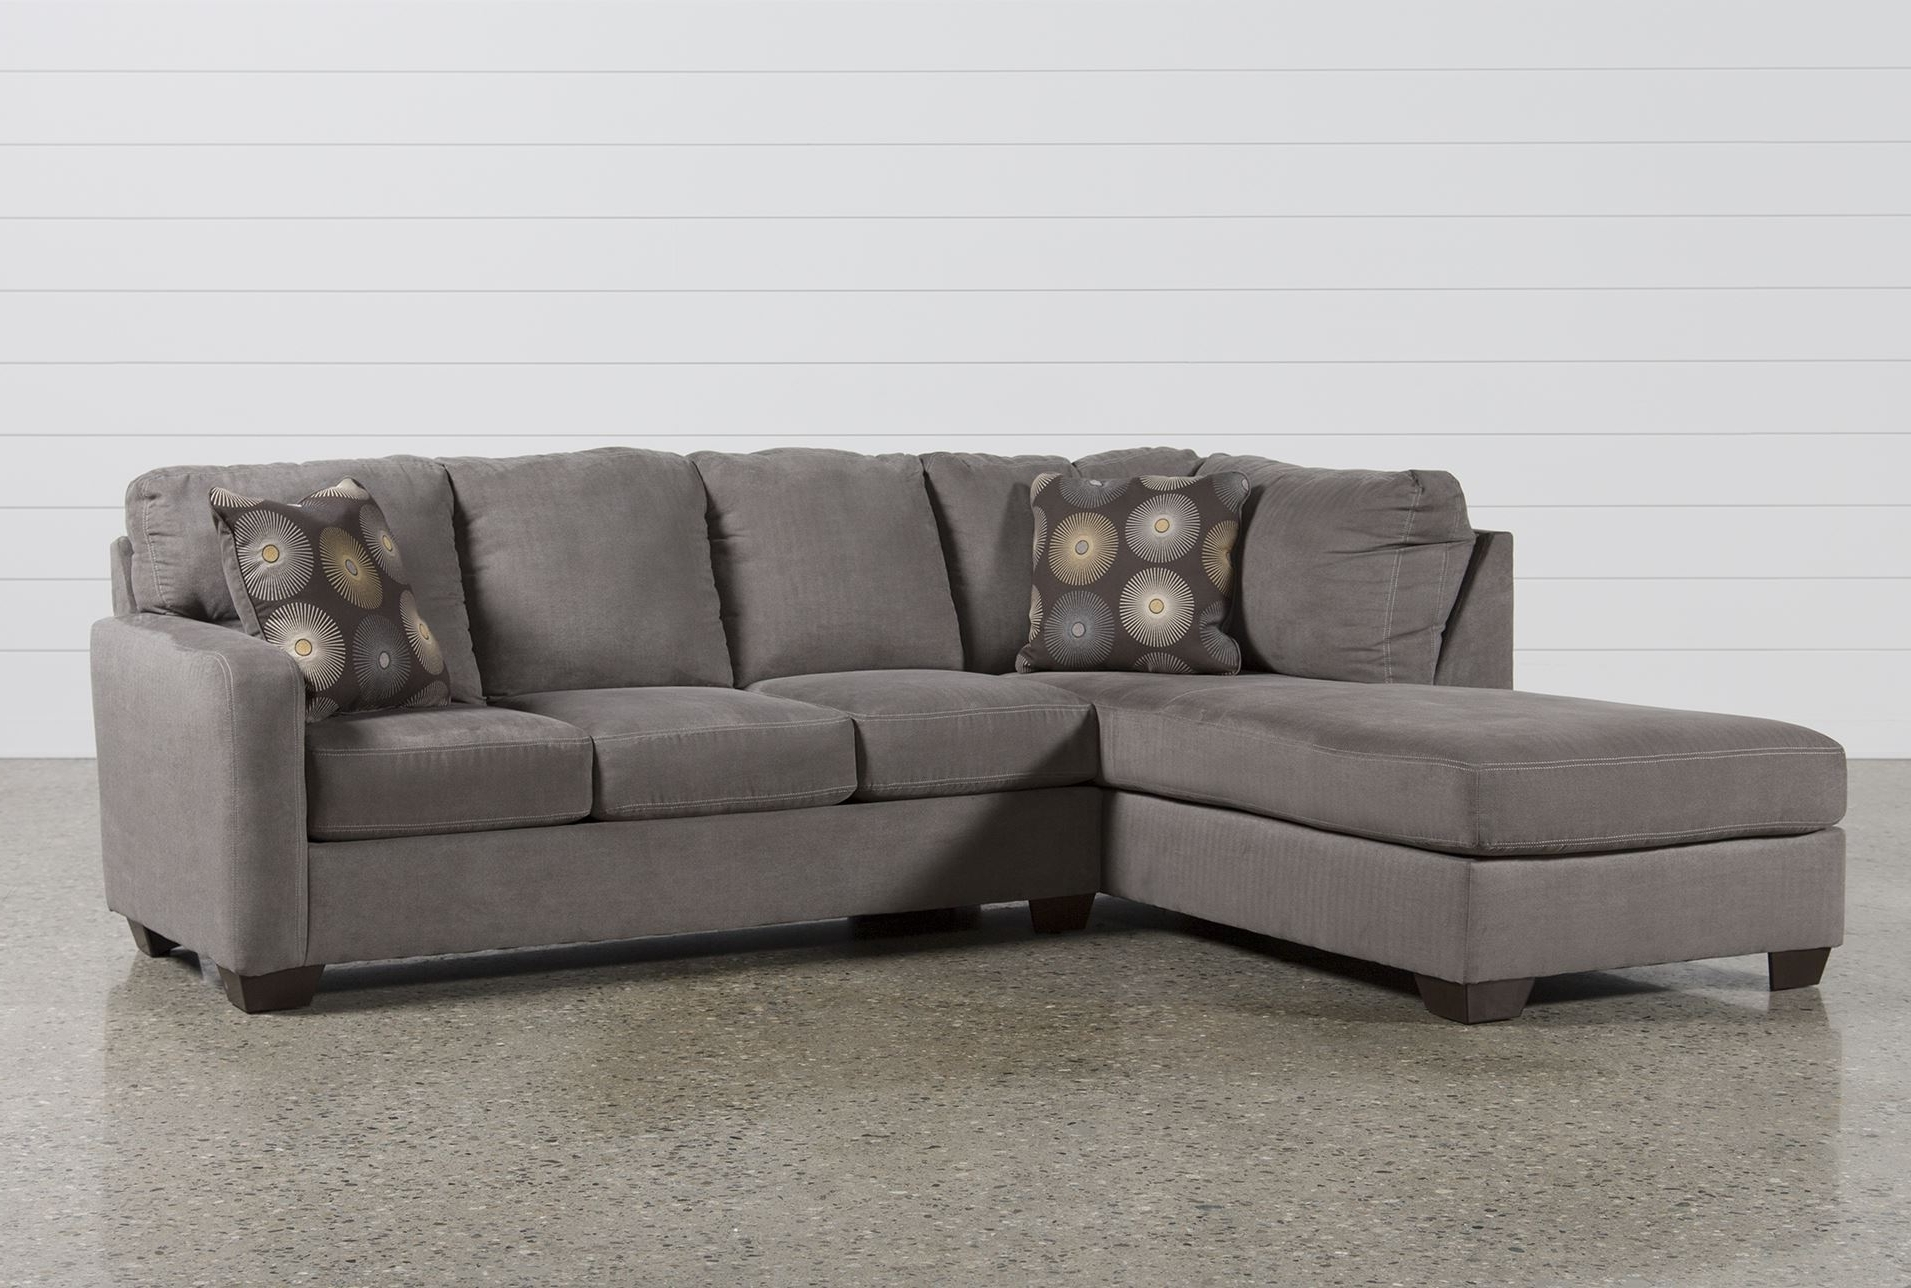 Newest Sofa ~ Luxury Leather Sofa With Chaise Lounge Cute Small Sectional Within 2 Piece Sectionals With Chaise Lounge (View 8 of 15)